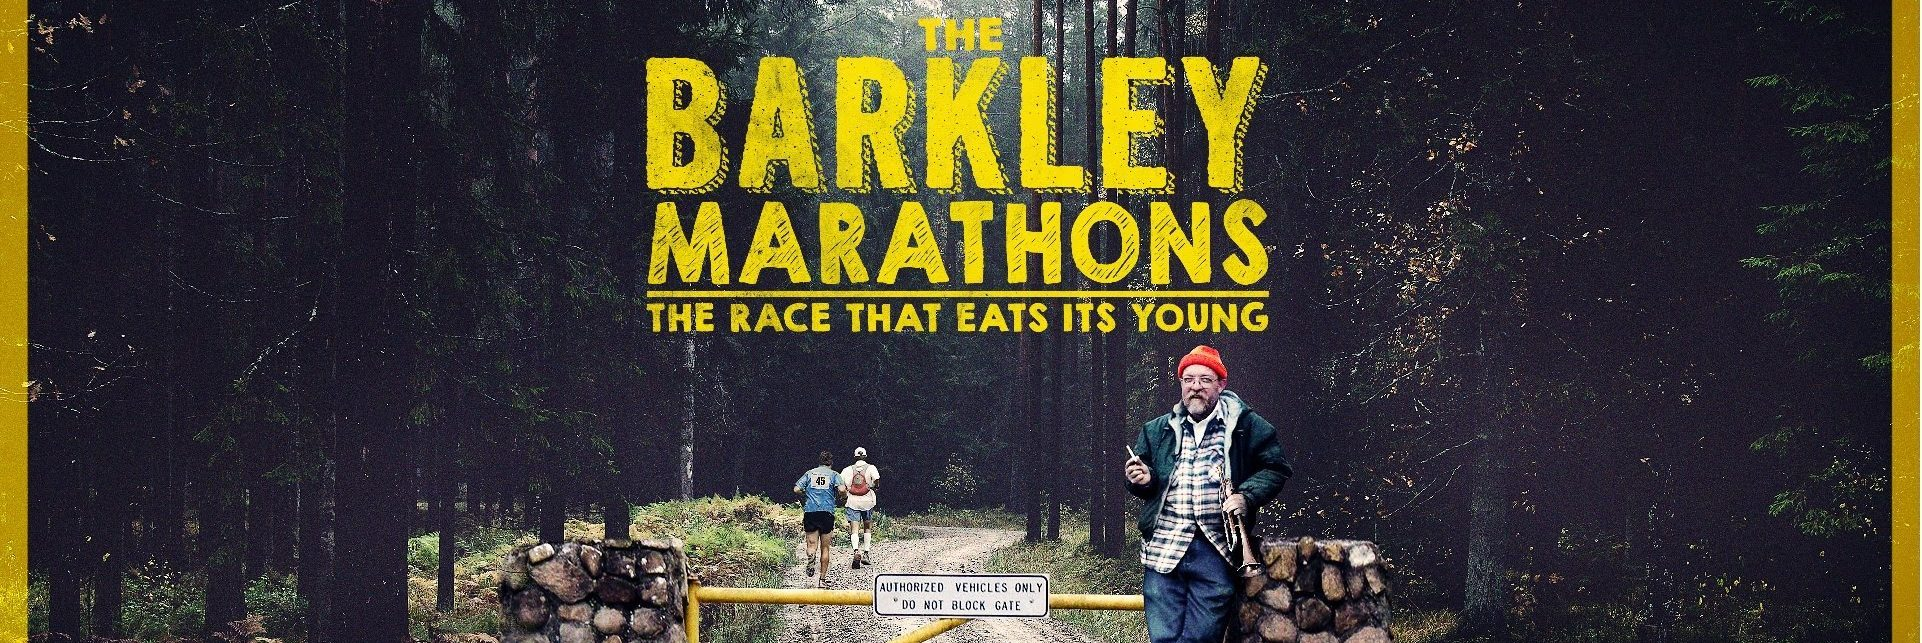 Must See Movie: The Barkley Marathons